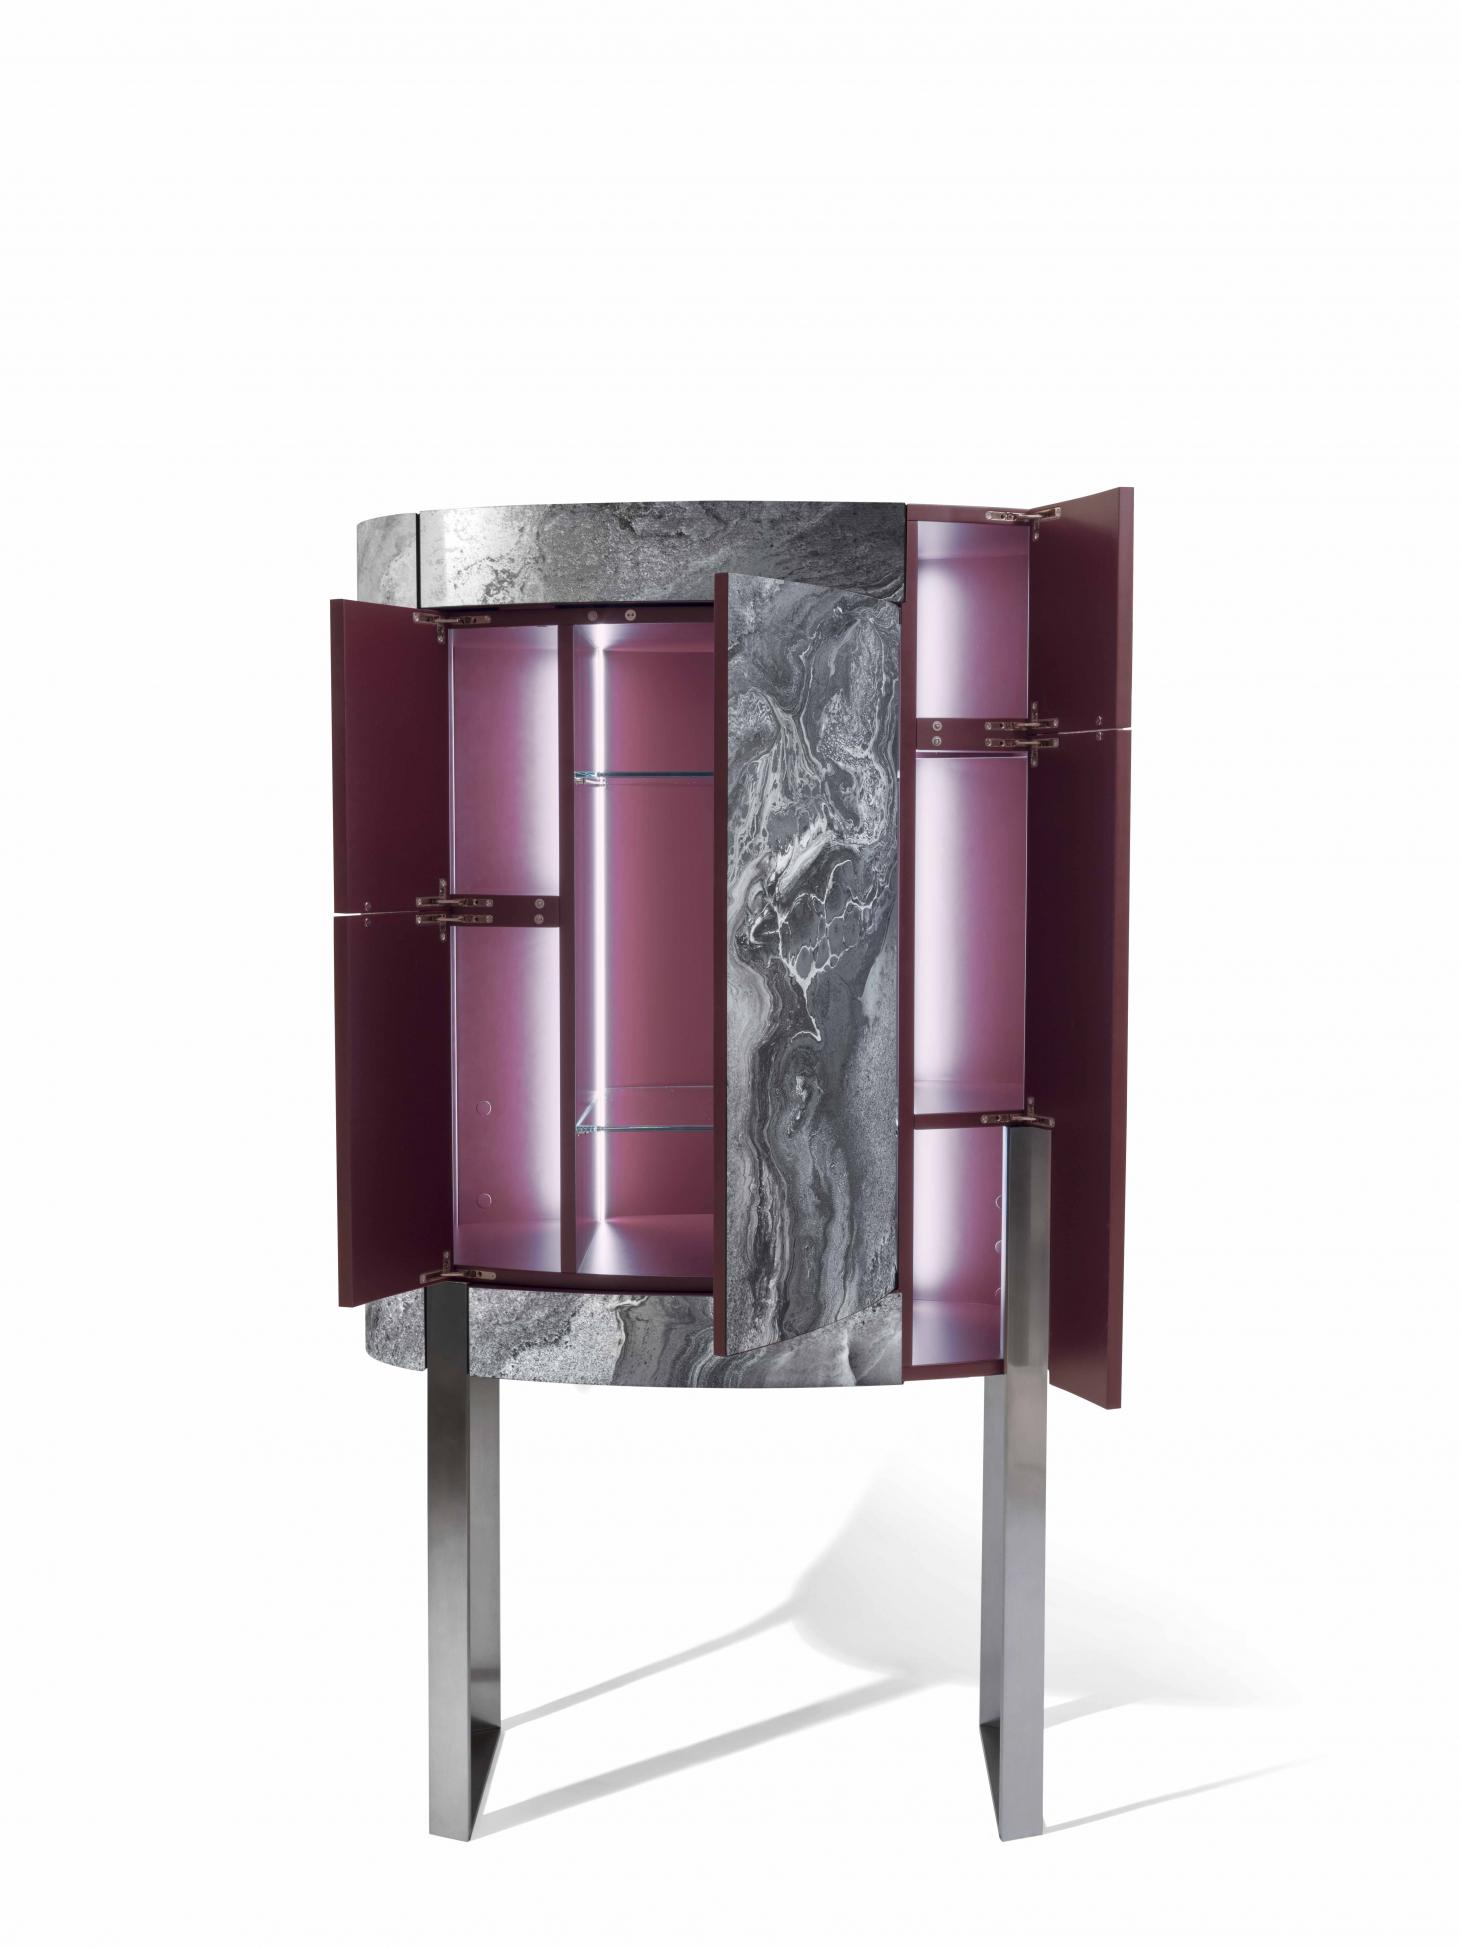 A tall drinks cabinet with open doors. The outside is clad in metal sheet with marbled effect, while the inside is made of wood painted burgundy colour